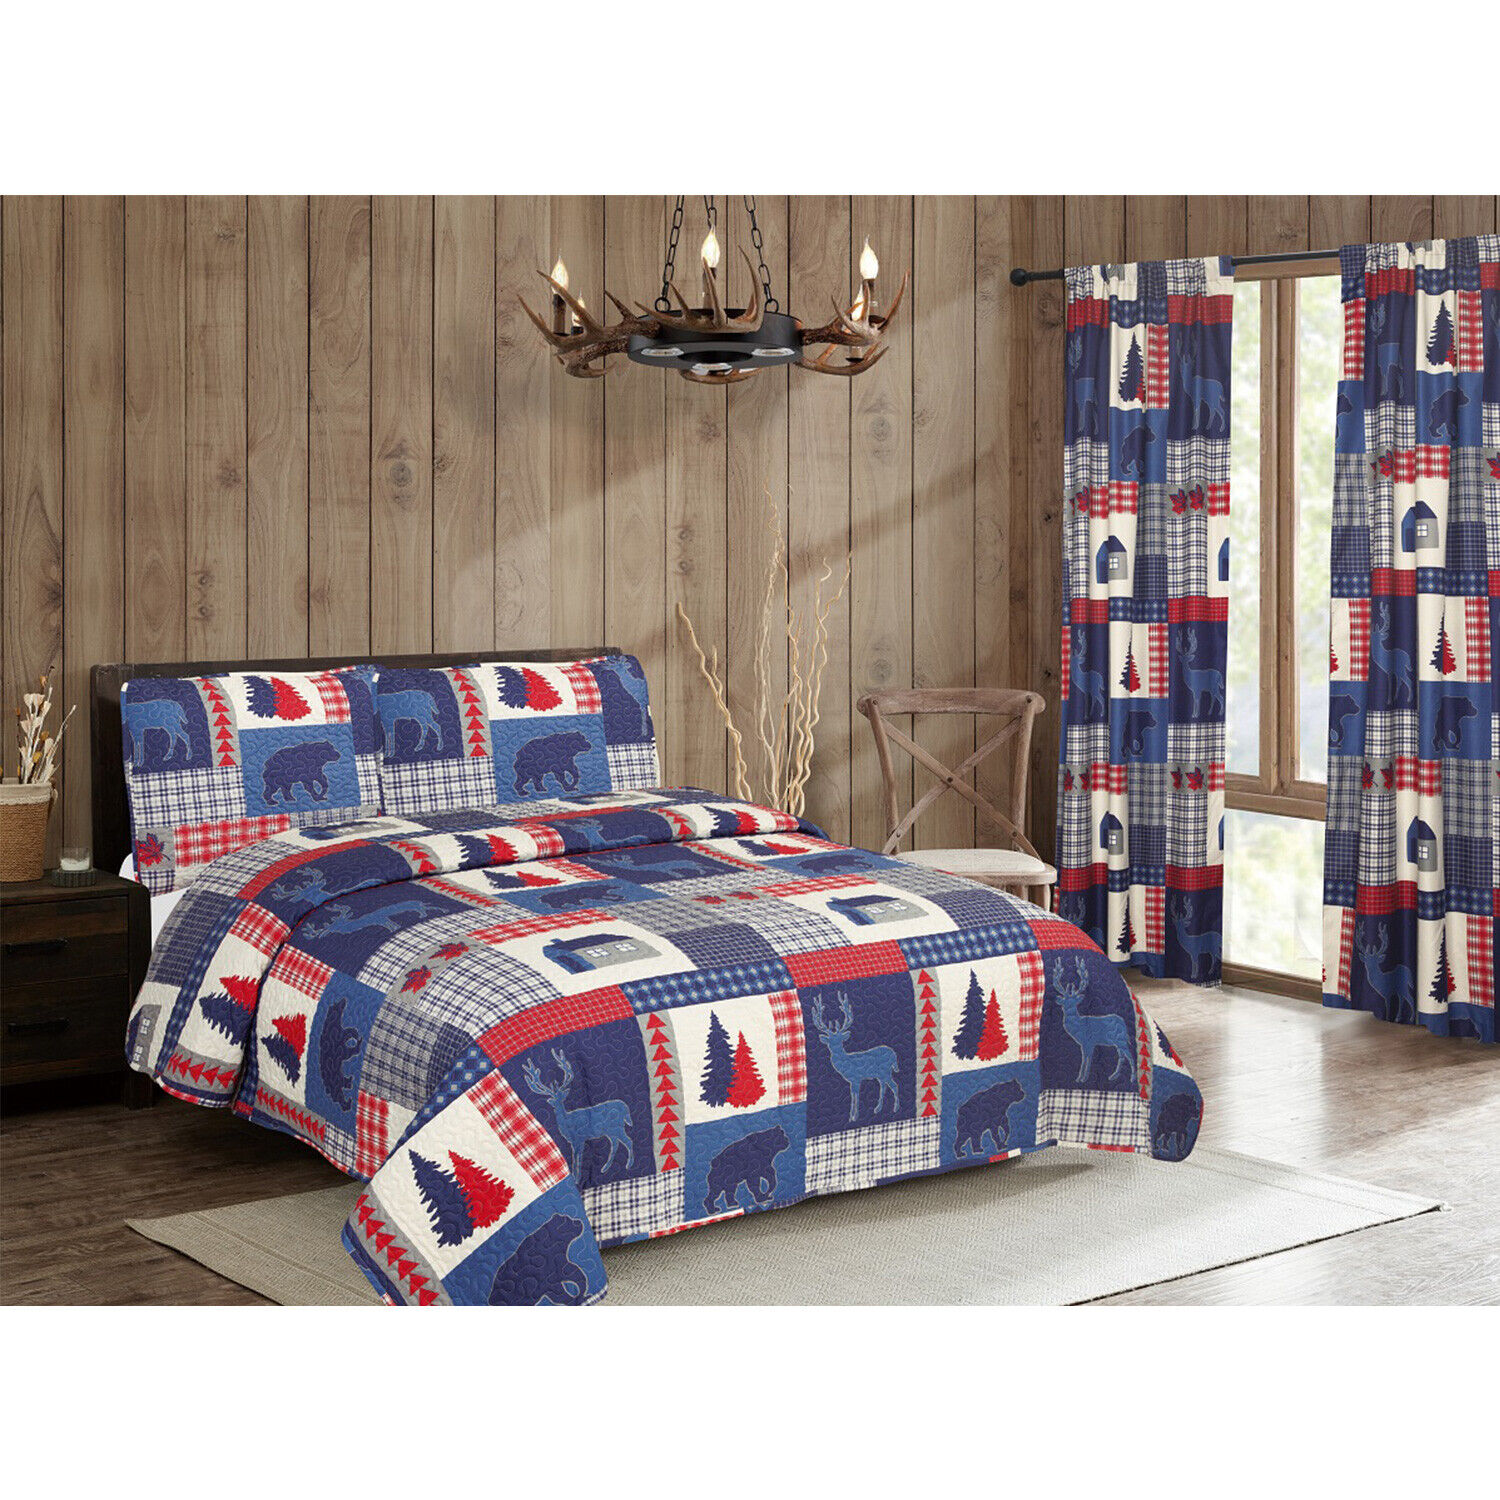 Twin Full/Queen King Rustic Americana Cabin Quilt Bedding Set or Window Curtains Bedding